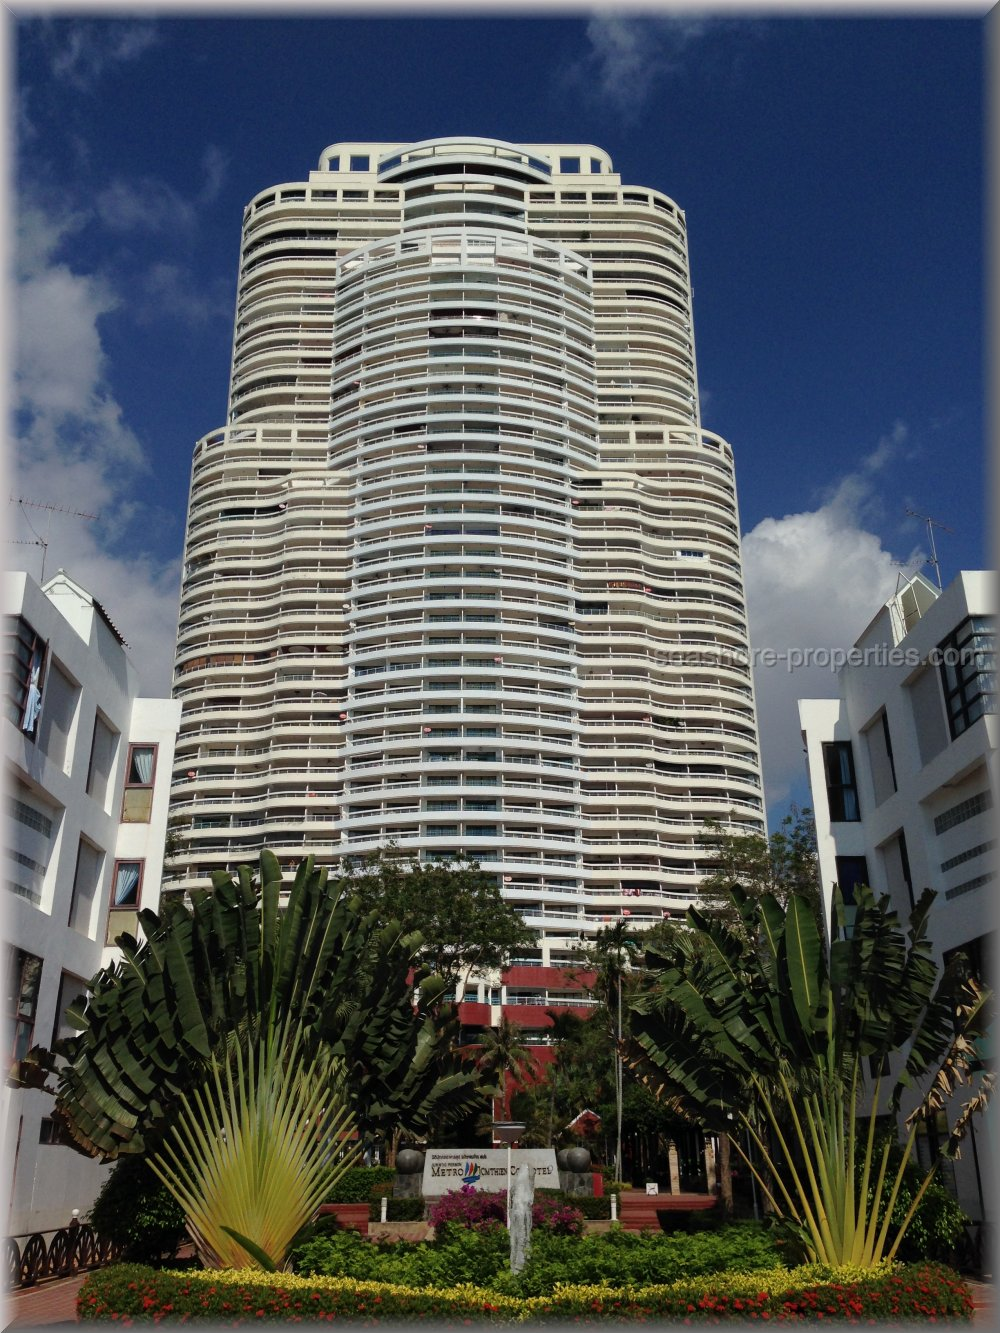 metro jomtien condotel for sale in Jomtien Pattaya